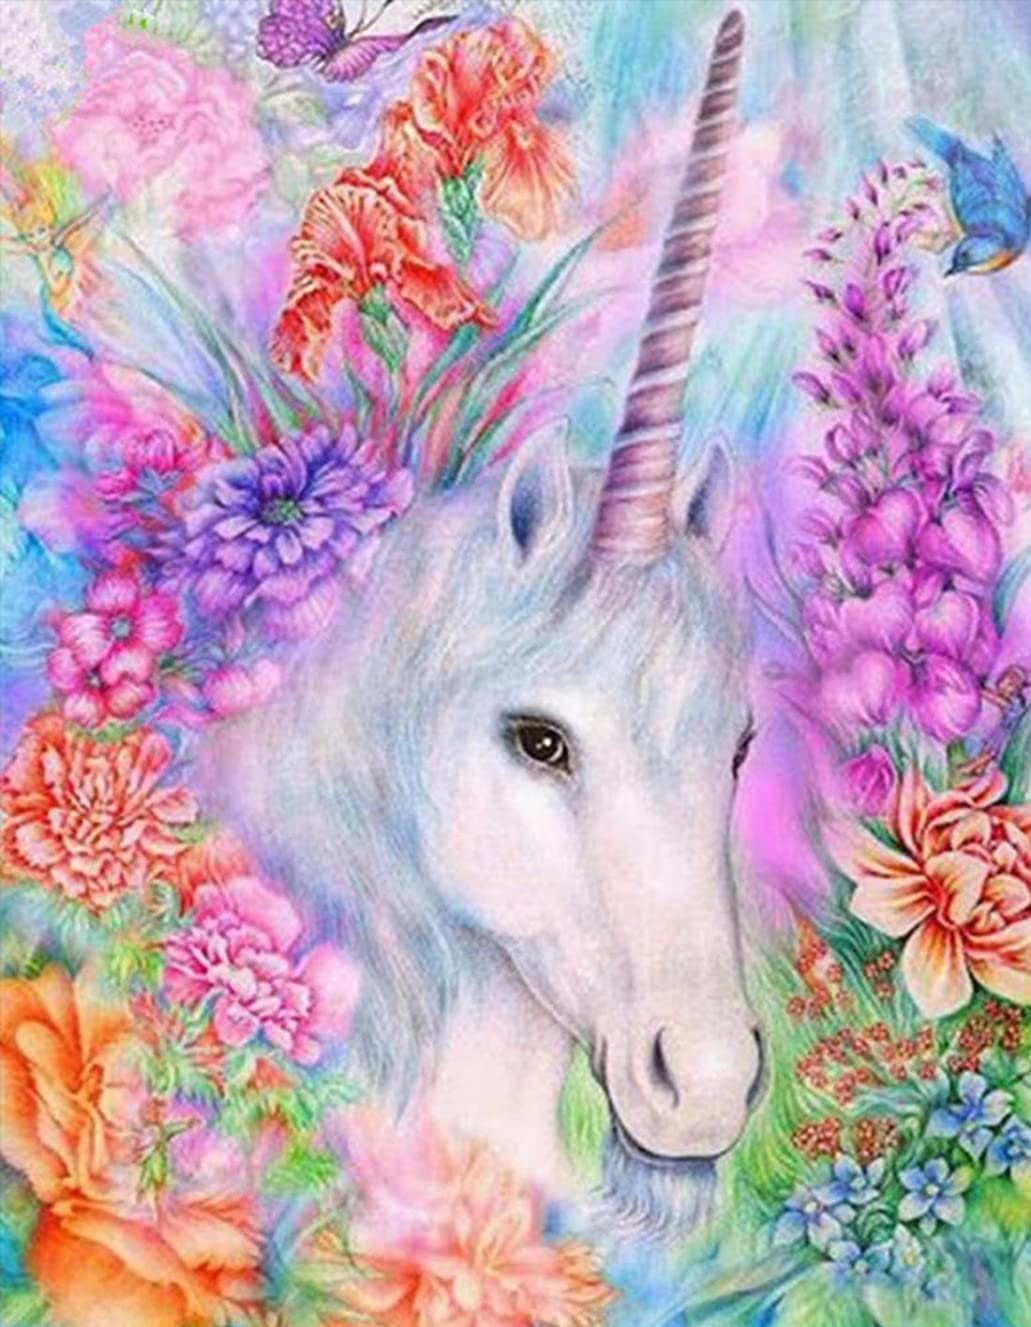 DIY 5D Diamond Painting by Number Kit, Full Drill White Unicorn Embroidery Cross Stitch Arts Craft Canvas Wall Decor 11.8 x 15.8 inch